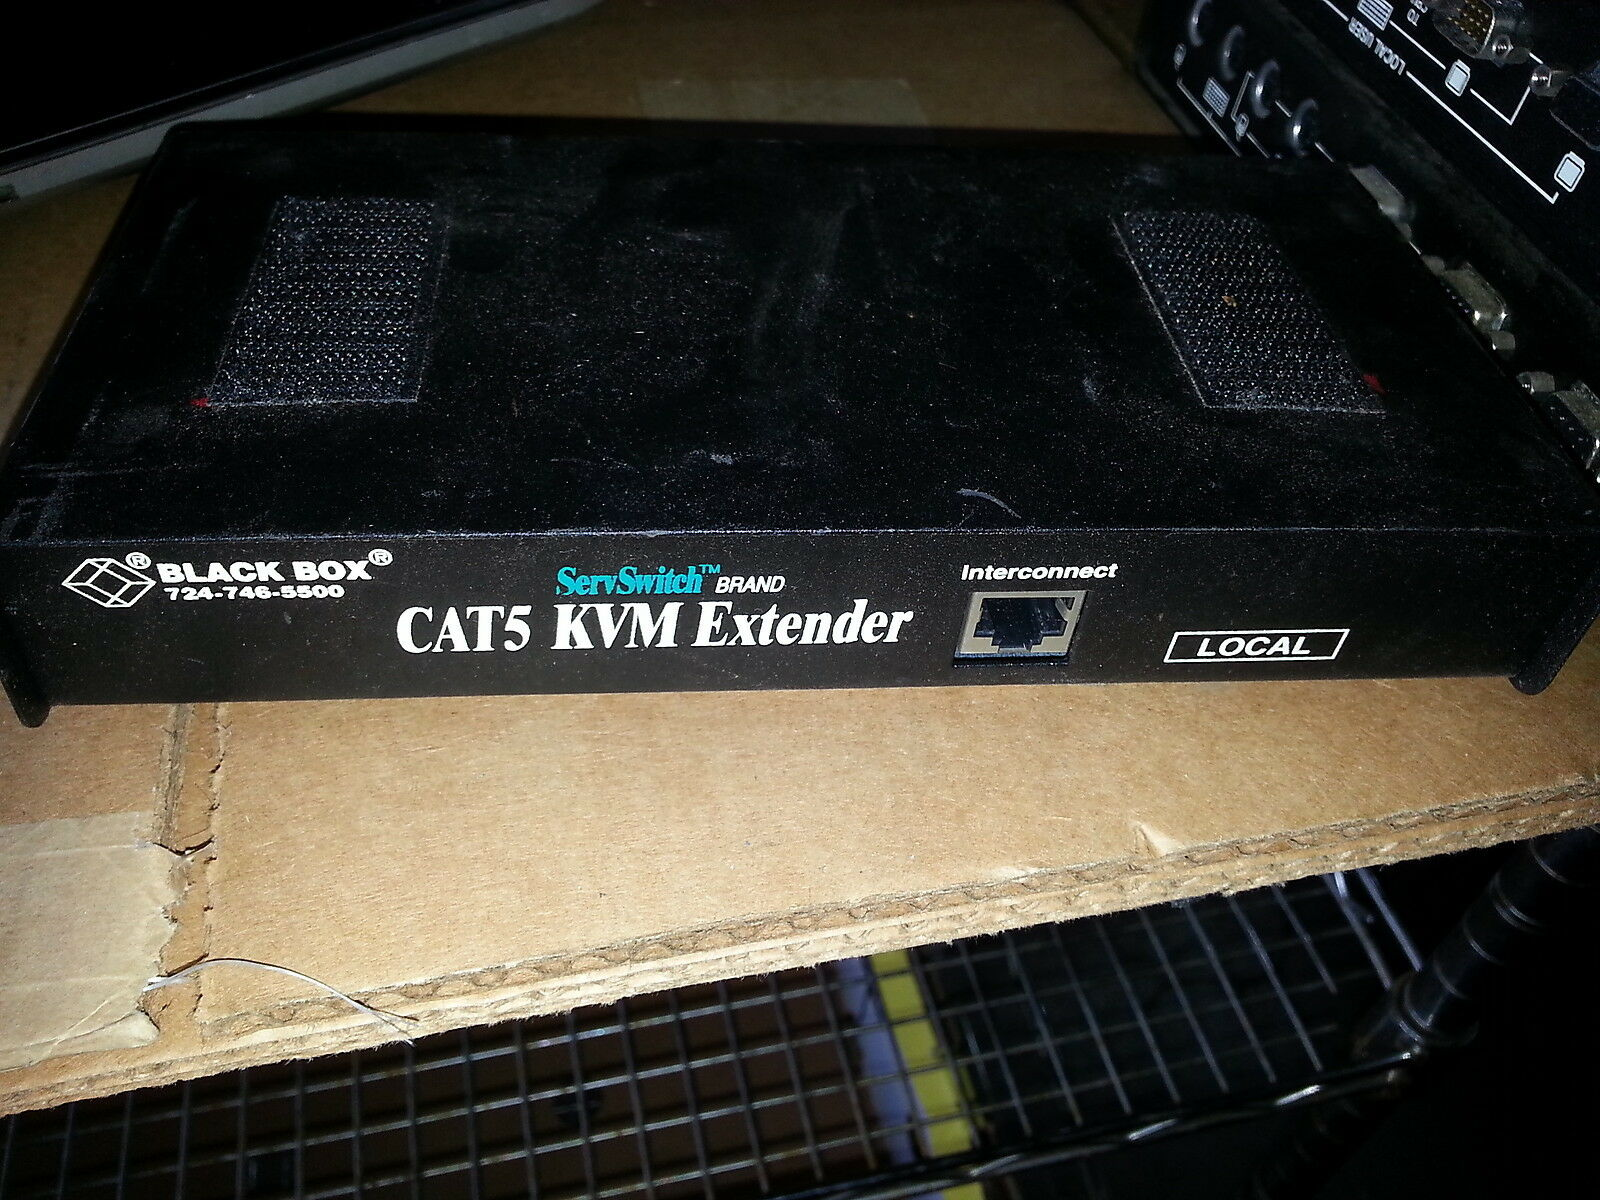 EACH .. Black Box ACU1008A Servswitch Cat5 Kvm Extender LOCAL . QTY